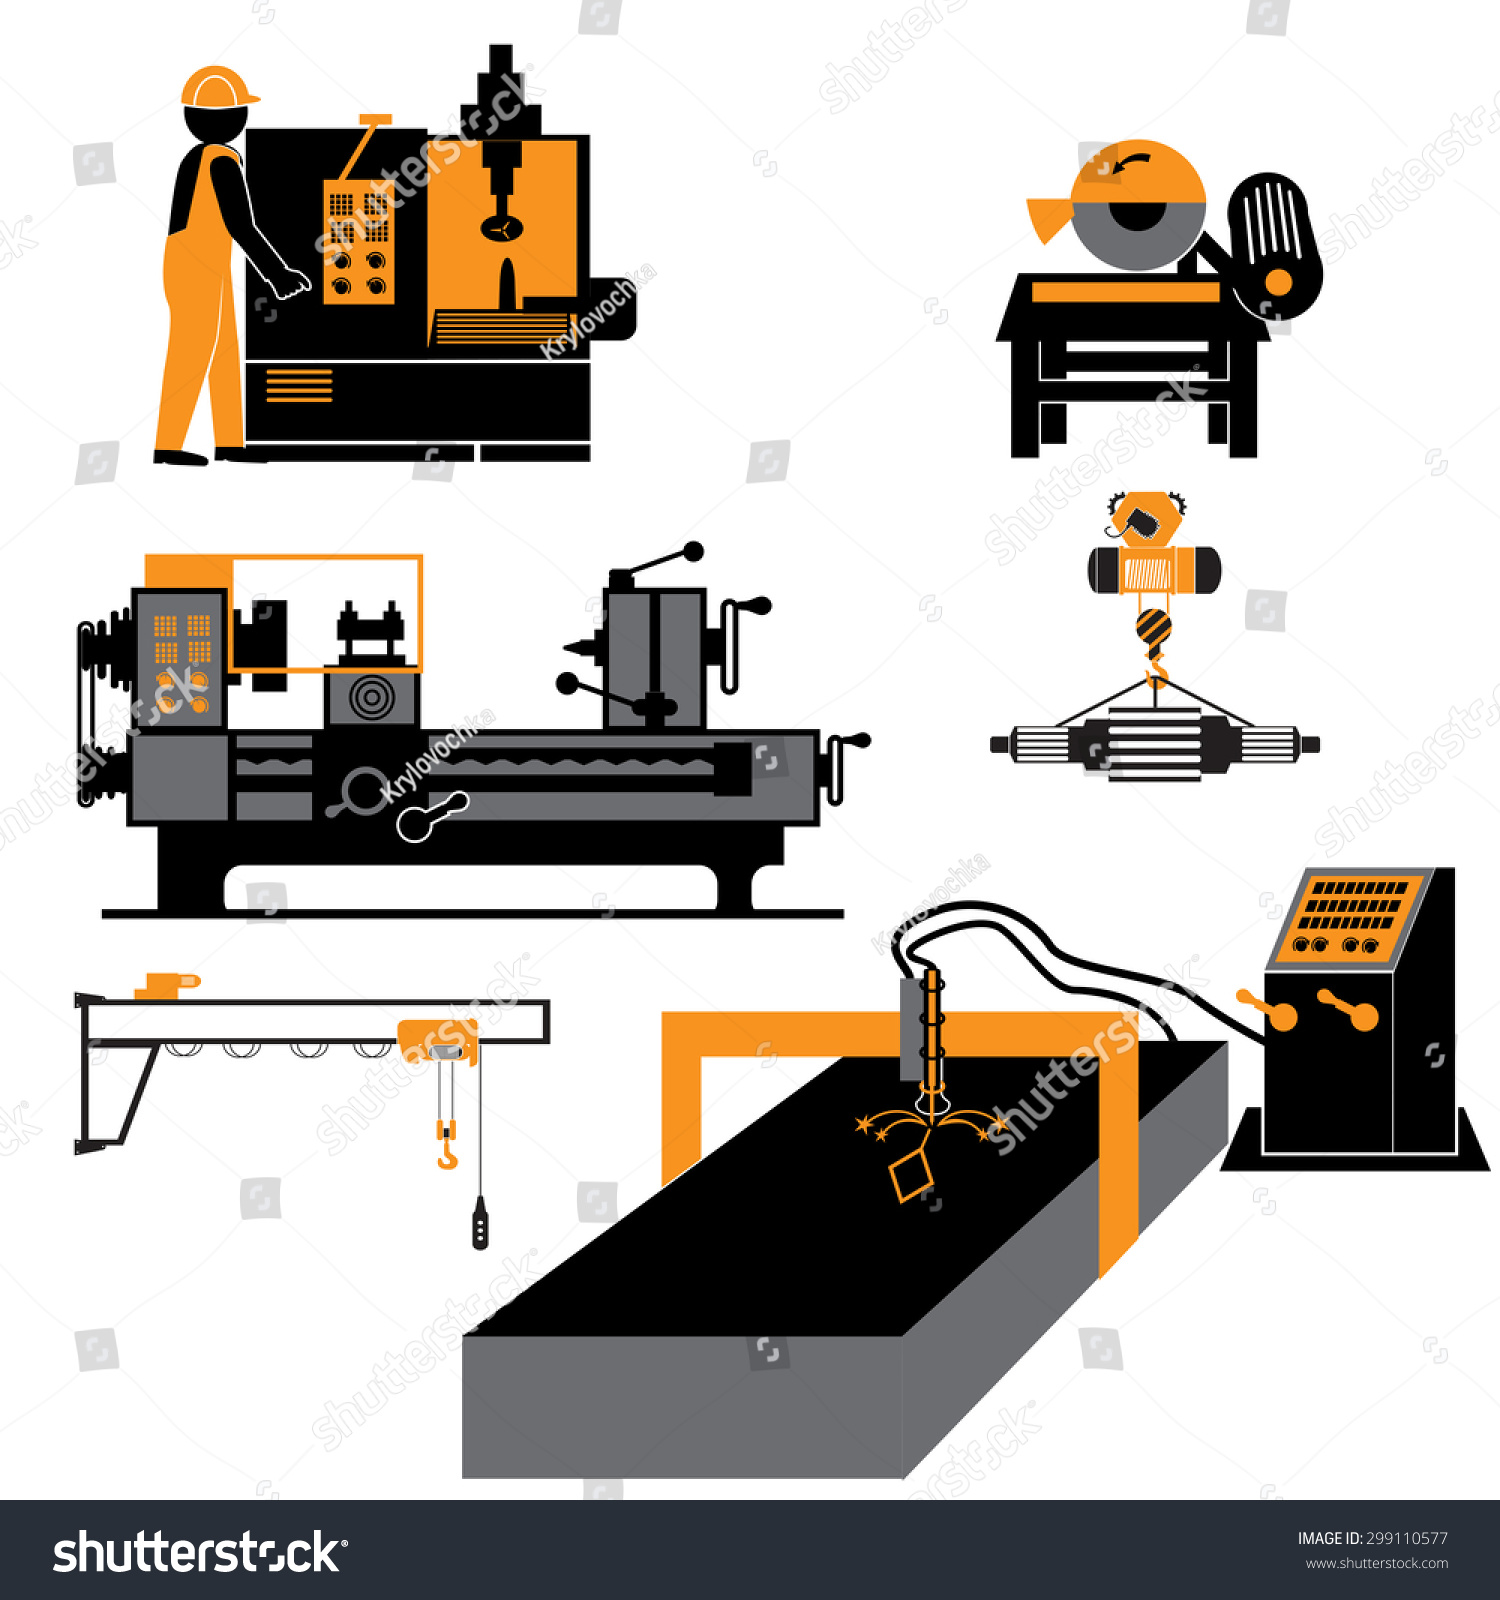 Machine Metal Industrial Operationmechanic Icon Stock Vector ...